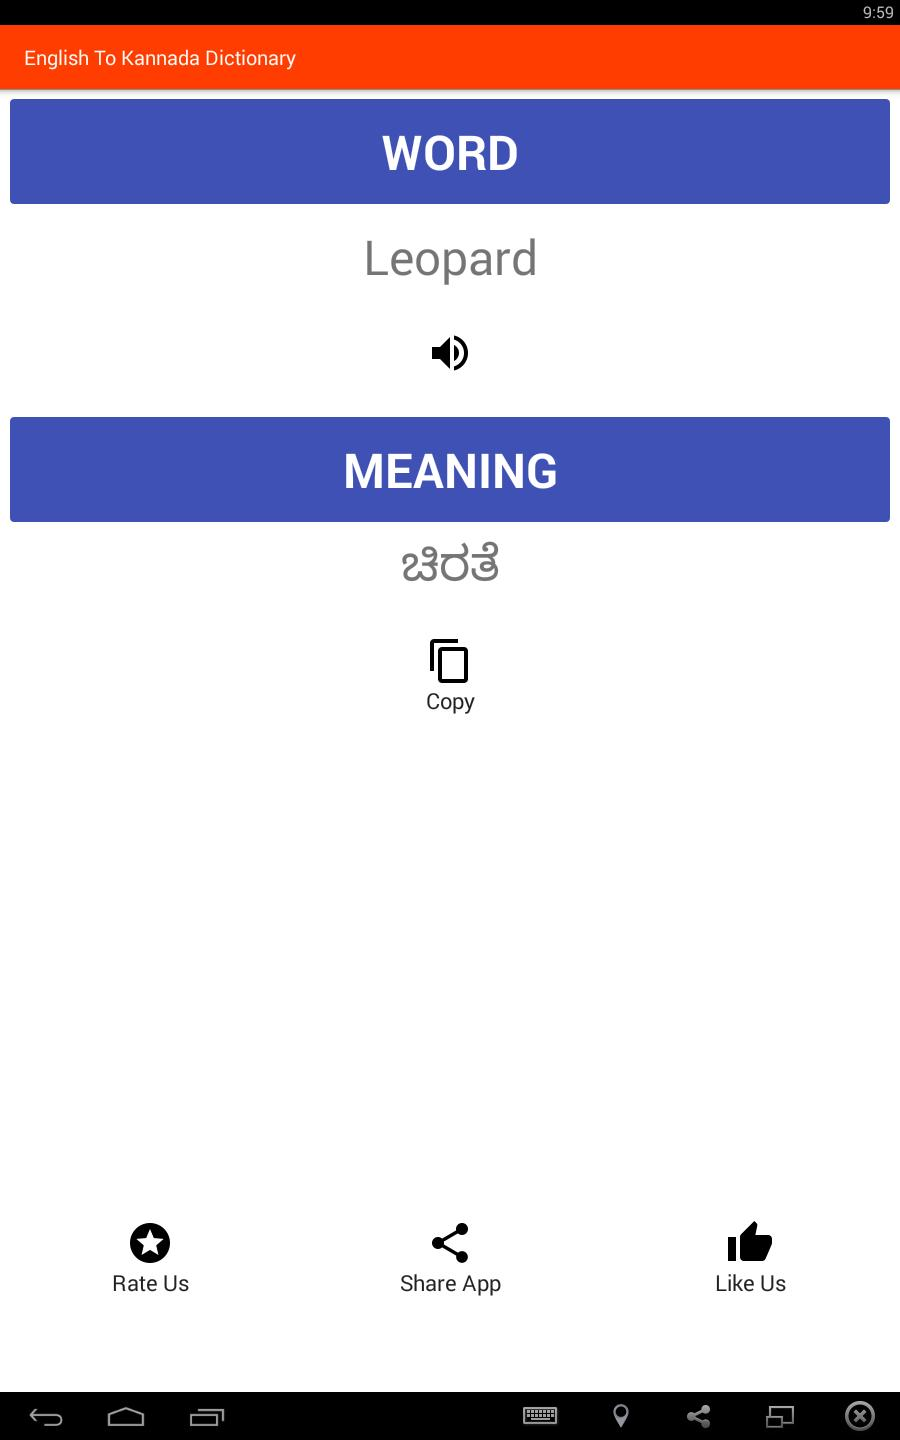 English To Kannada Dictionary for Android - APK Download